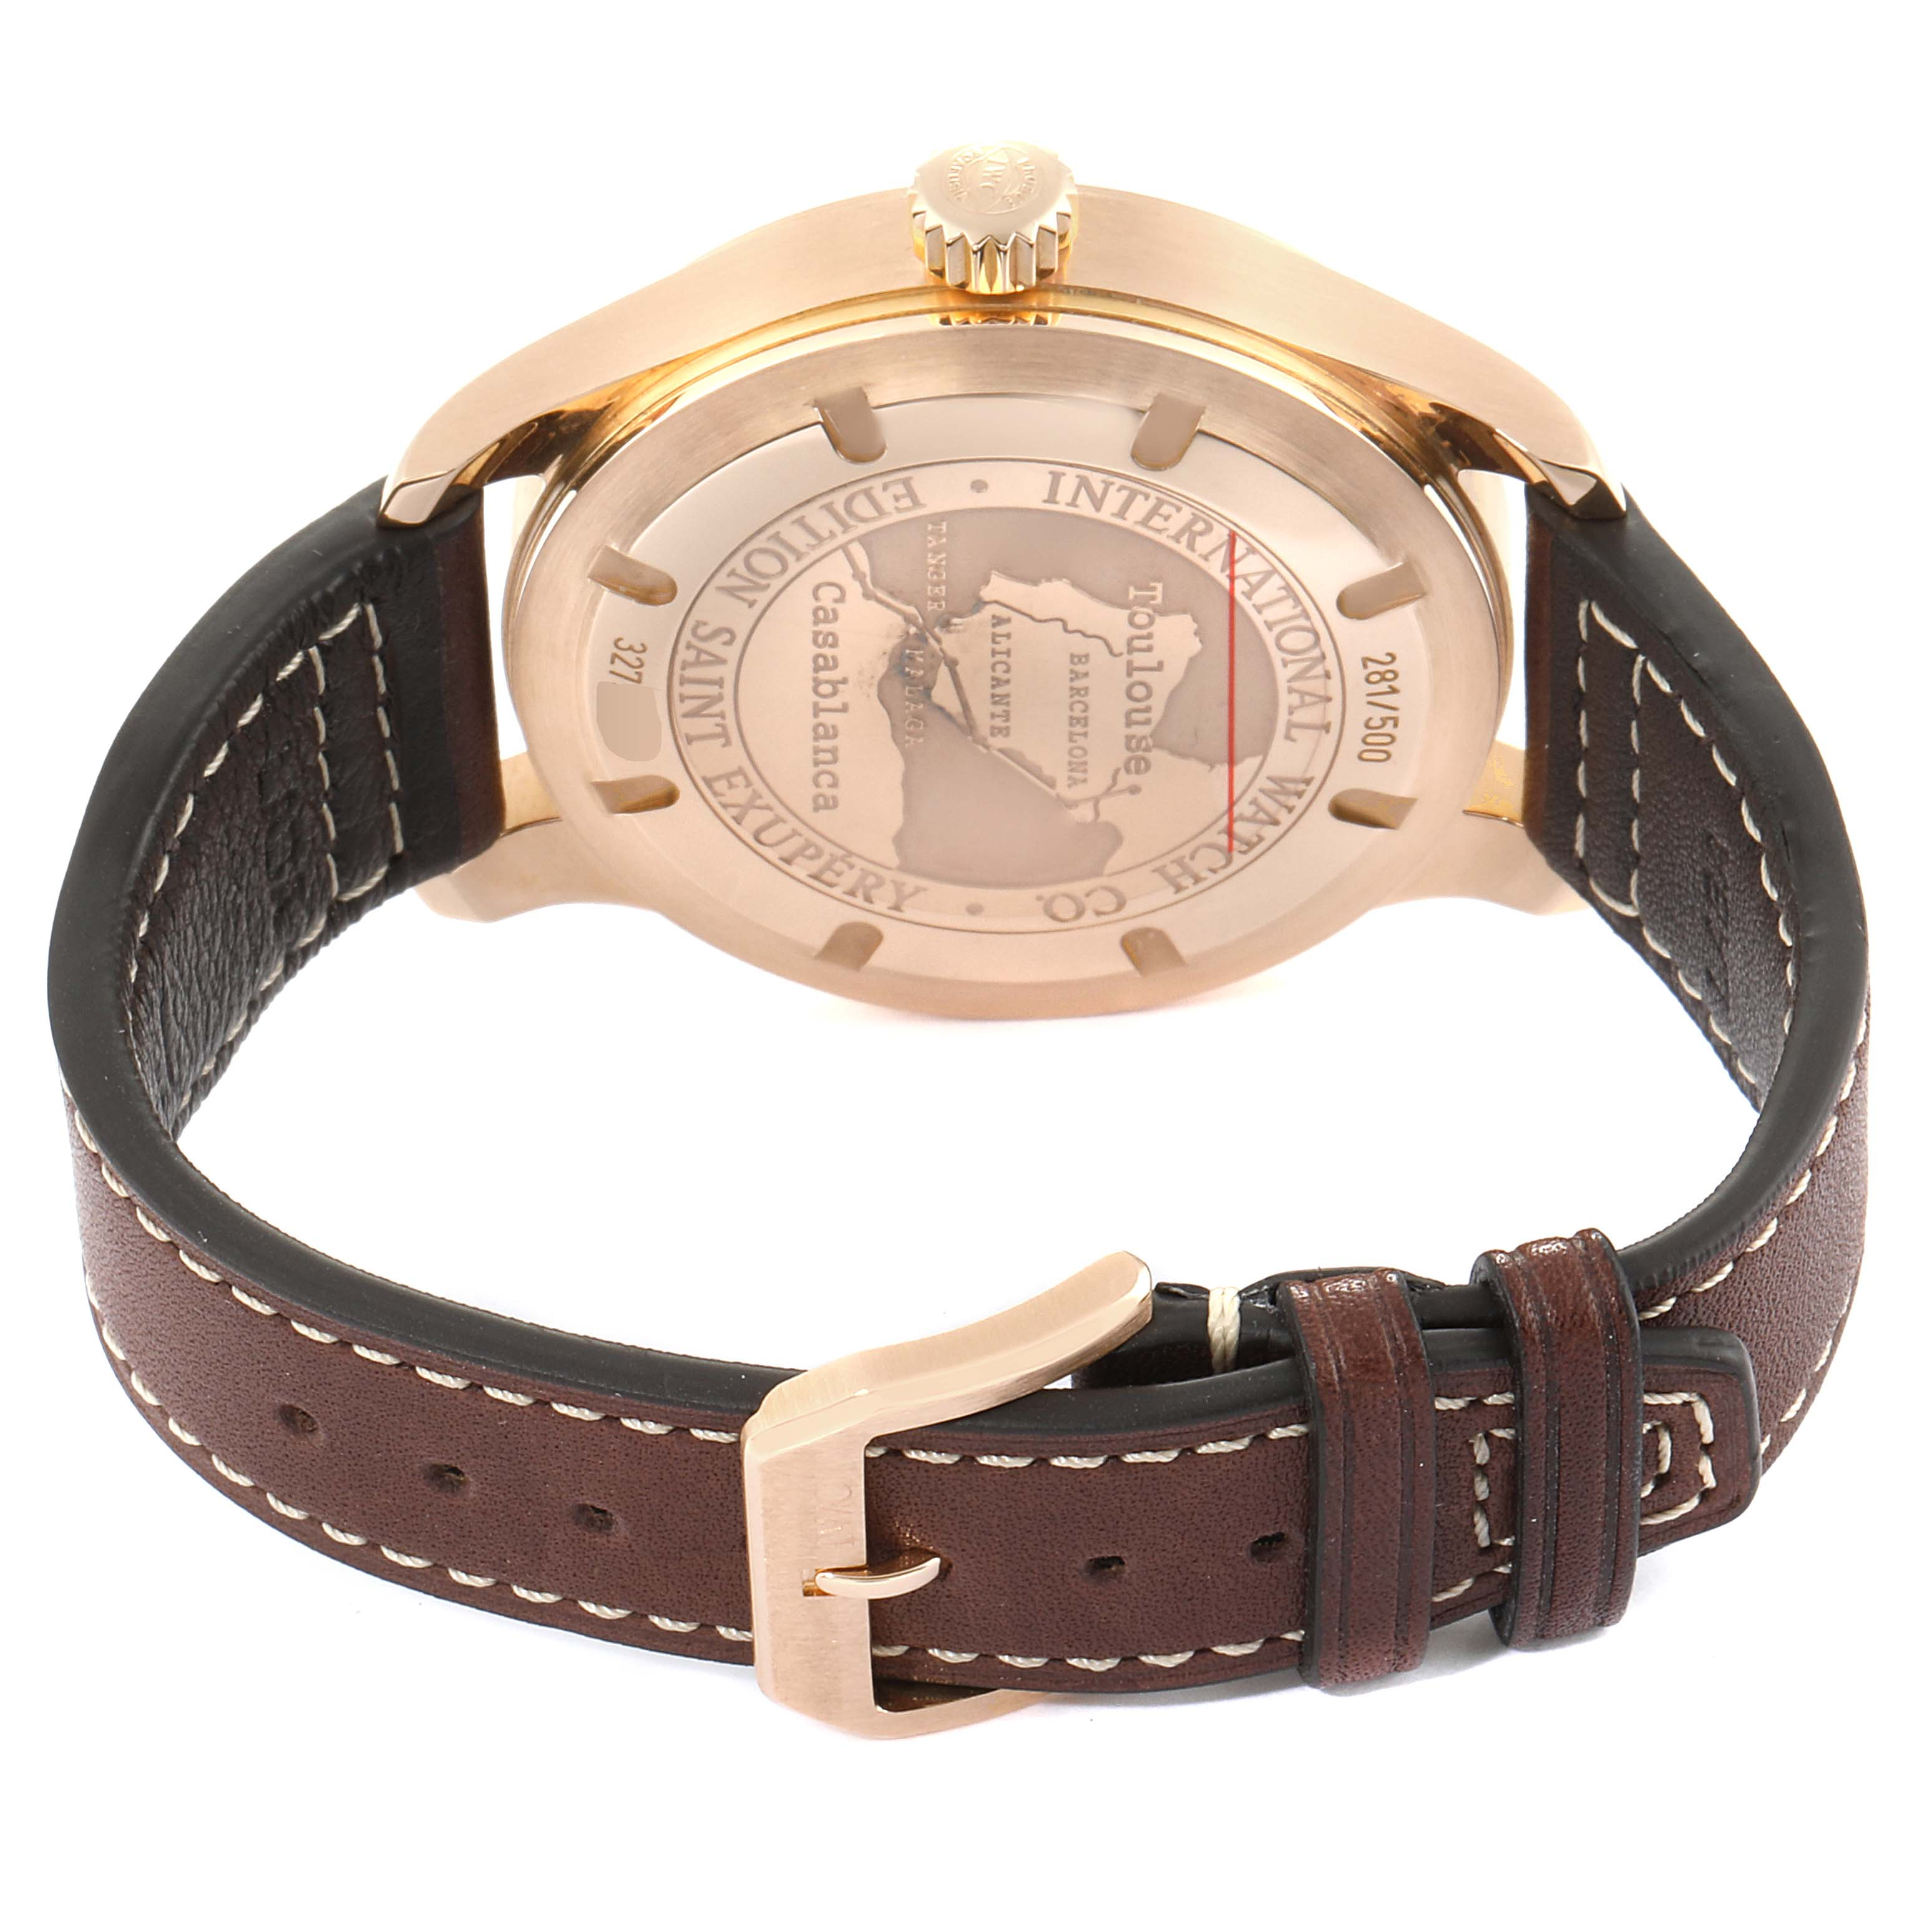 IWC Pilot Saint Exupery Rose Gold Limited Edition Watch IW320103 Card SwissWatchExpo